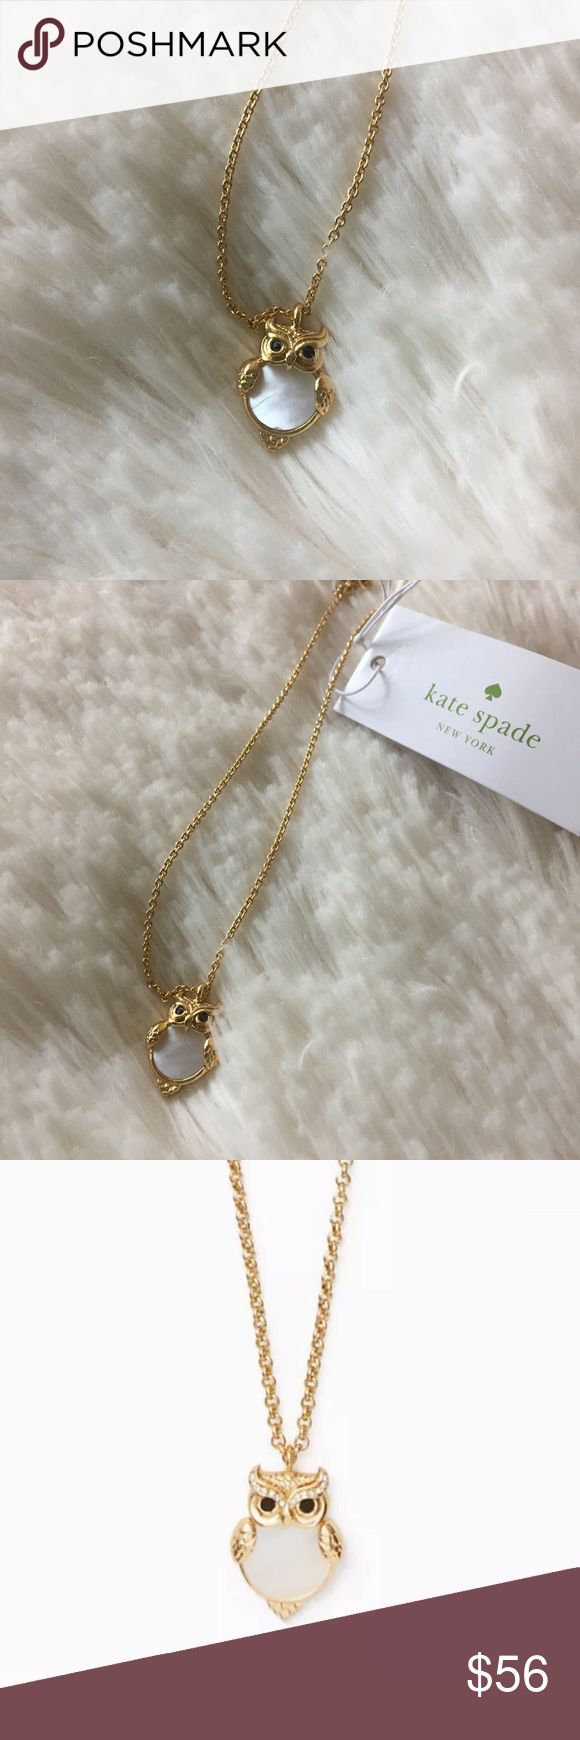 """Kate Spade Into The Woods Owl Necklace Whether you're the wise type or more of a night owl-- this owl necklace is the perfect way to show your love for the noble bird. Please note: this mini version does not have the crystals that the long chain version has. 24-karat gold plated metal. Lobster claw closure. Pendant 0.6""""; total chain length: 18"""" kate spade Jewelry Necklaces"""